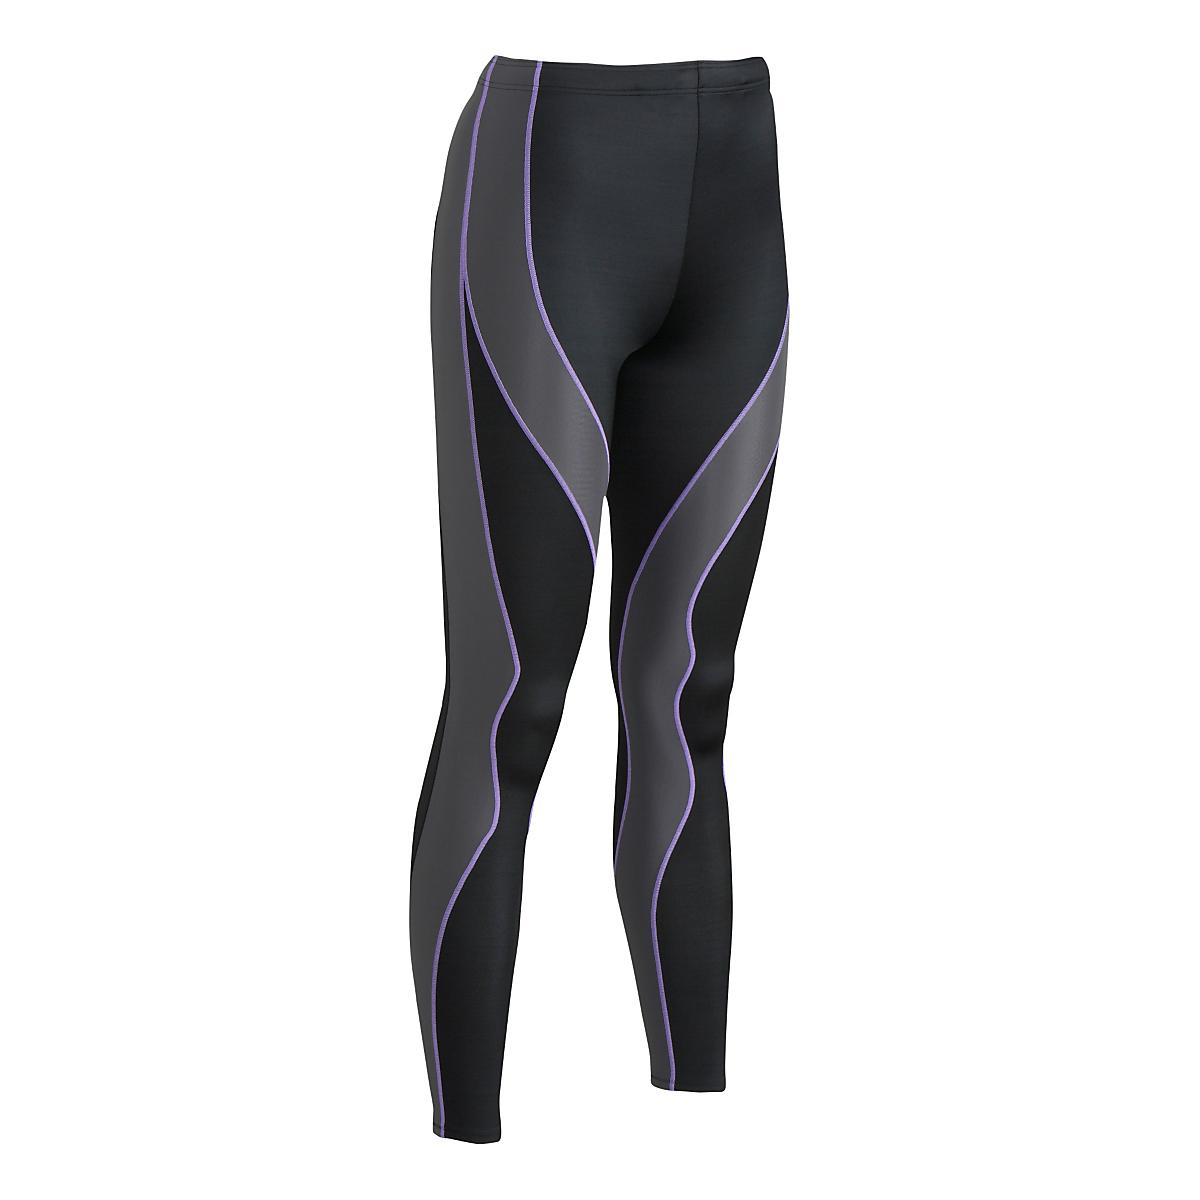 Women's CW-X�Performx Tights